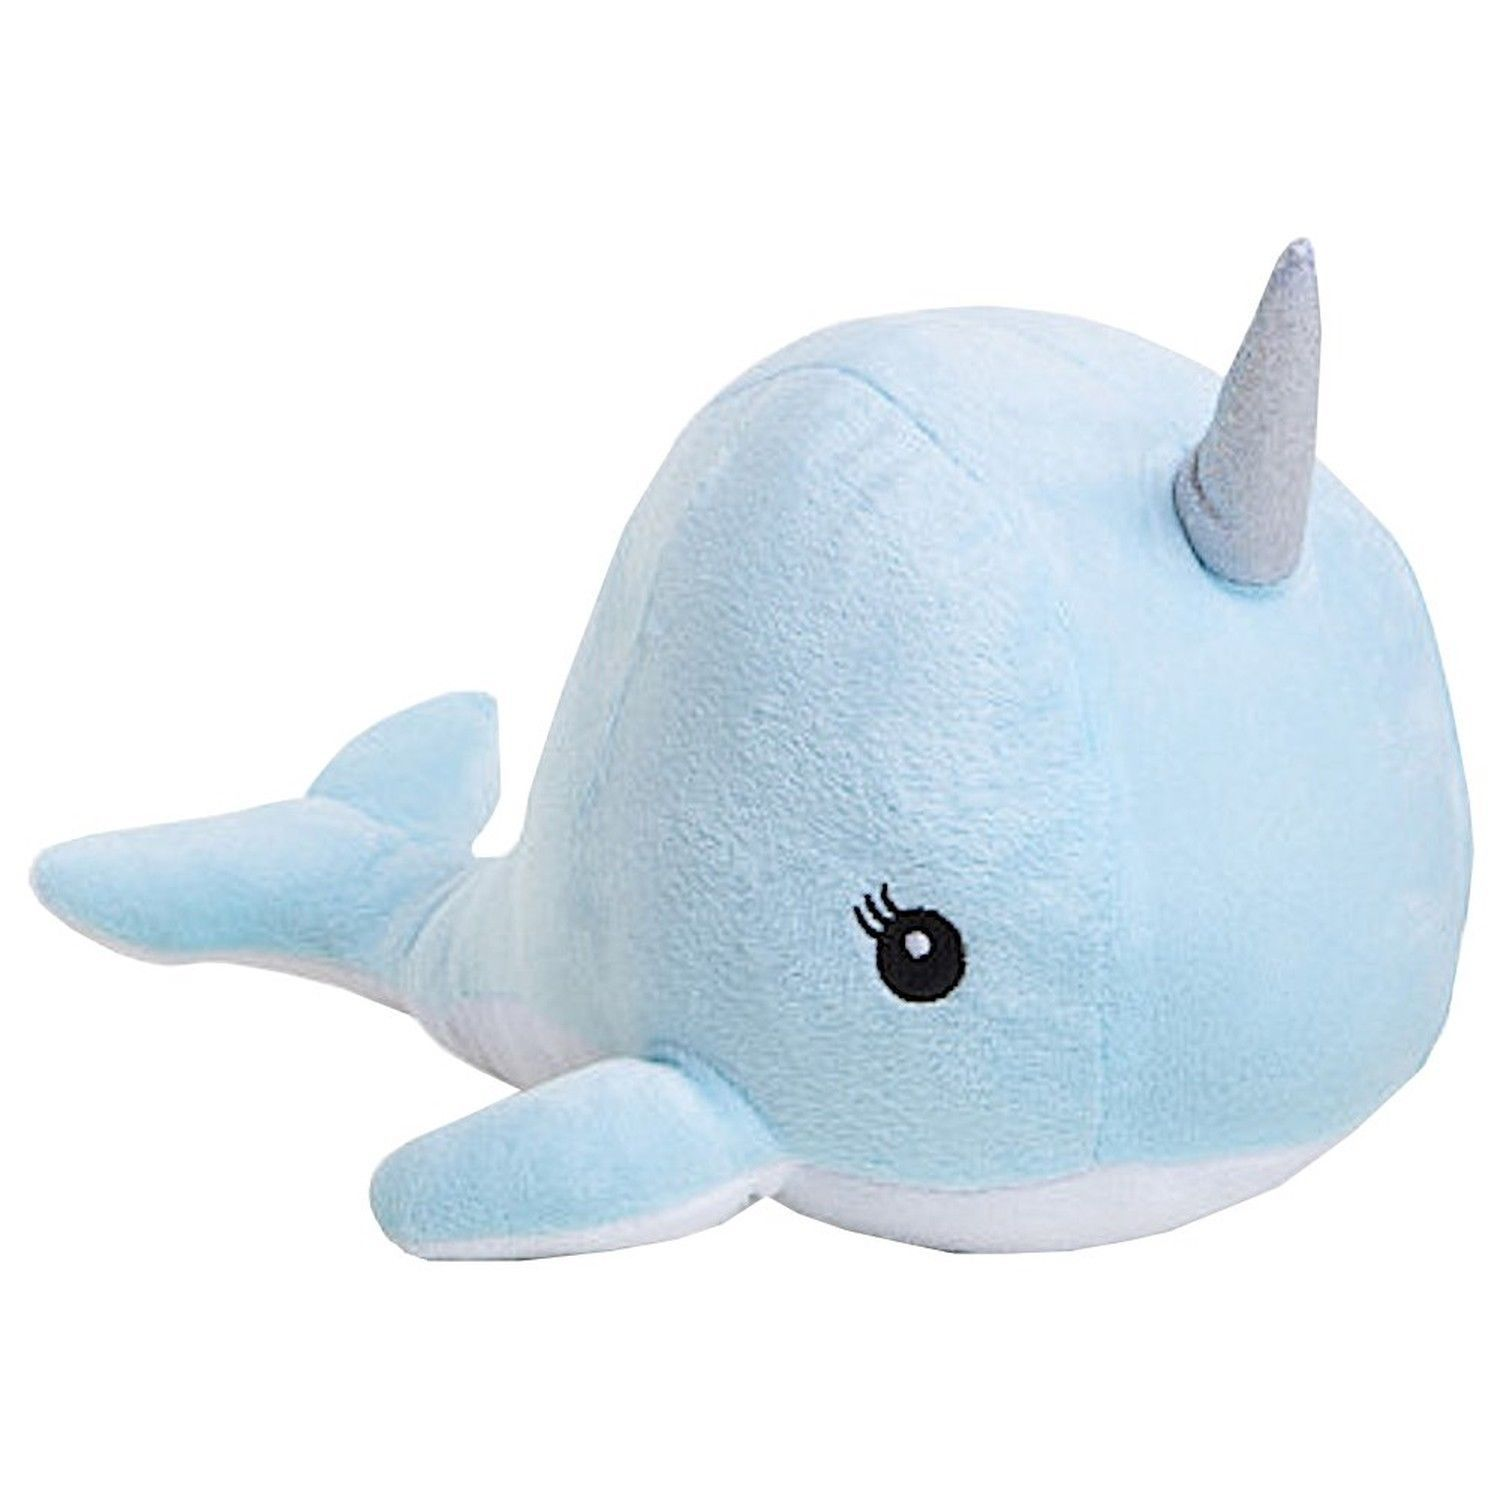 Room101 Narwhal Stuffed Animal Plush Blue 12""